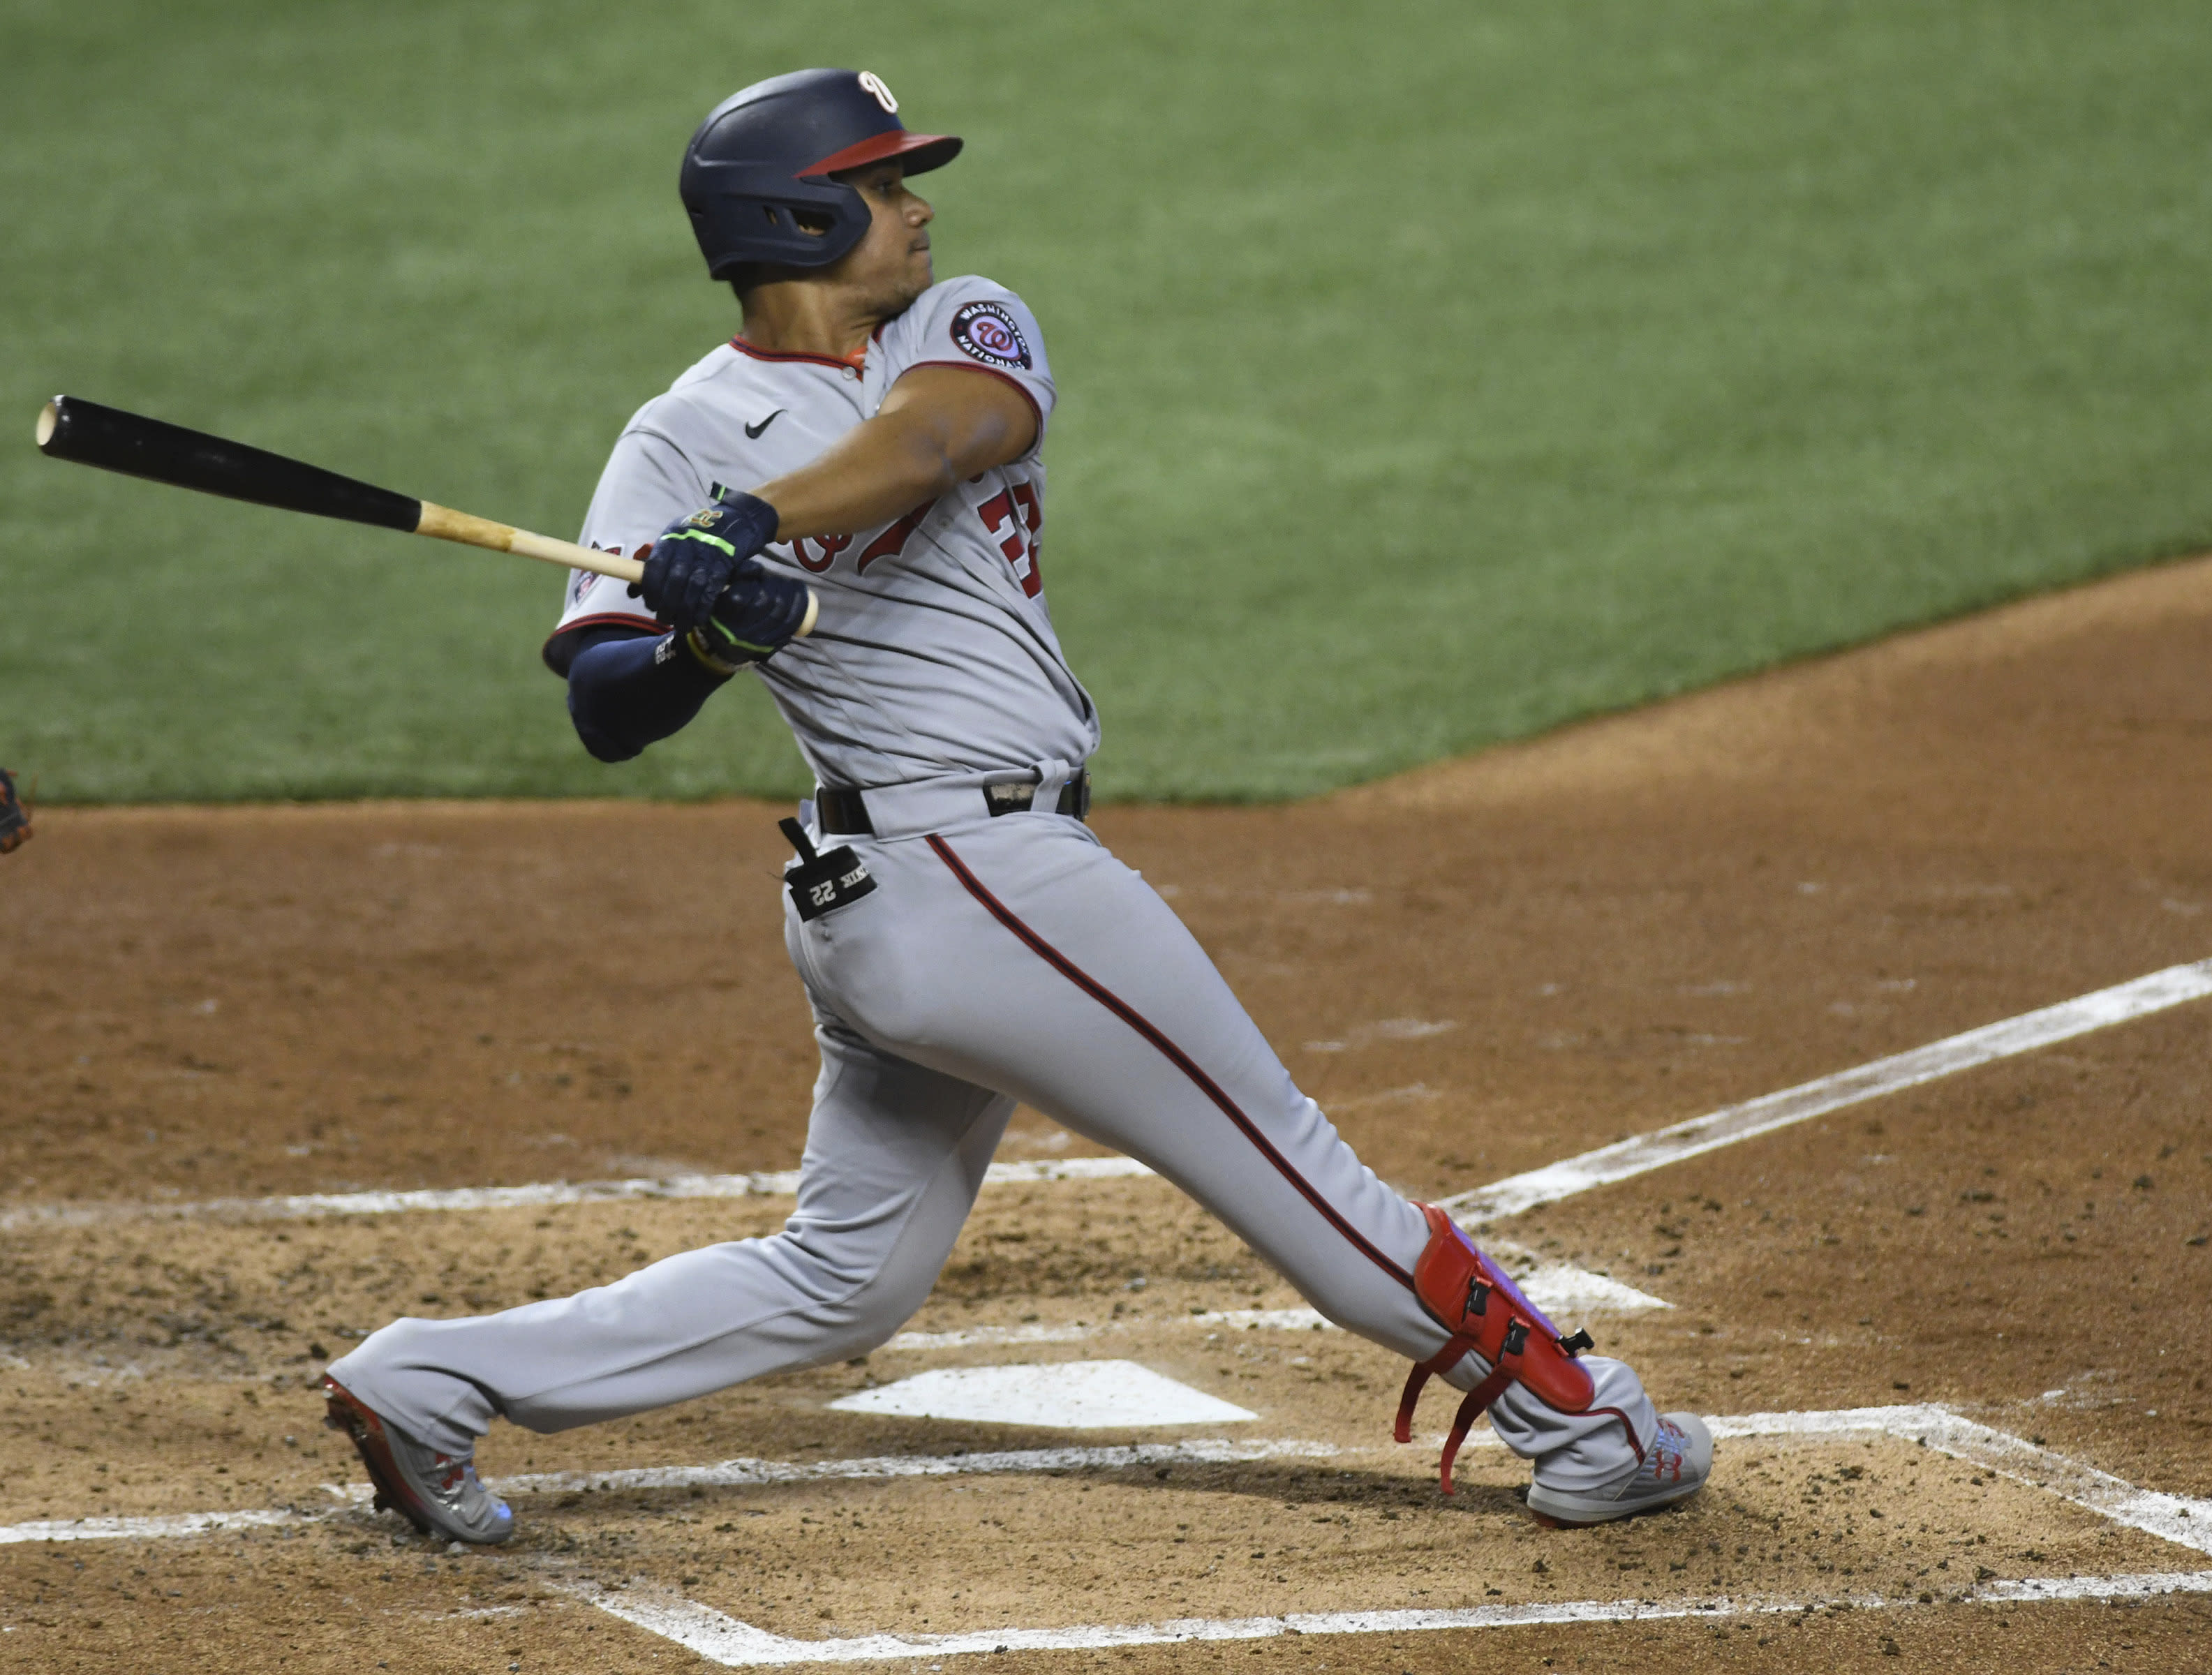 Washington Nationals Juan Soto singles during the second inning of game two of a doubleheader against the Miami Marlins, Sunday, Sept. 20, 2020, in Miami. (AP Photo/Gaston De Cardenas)